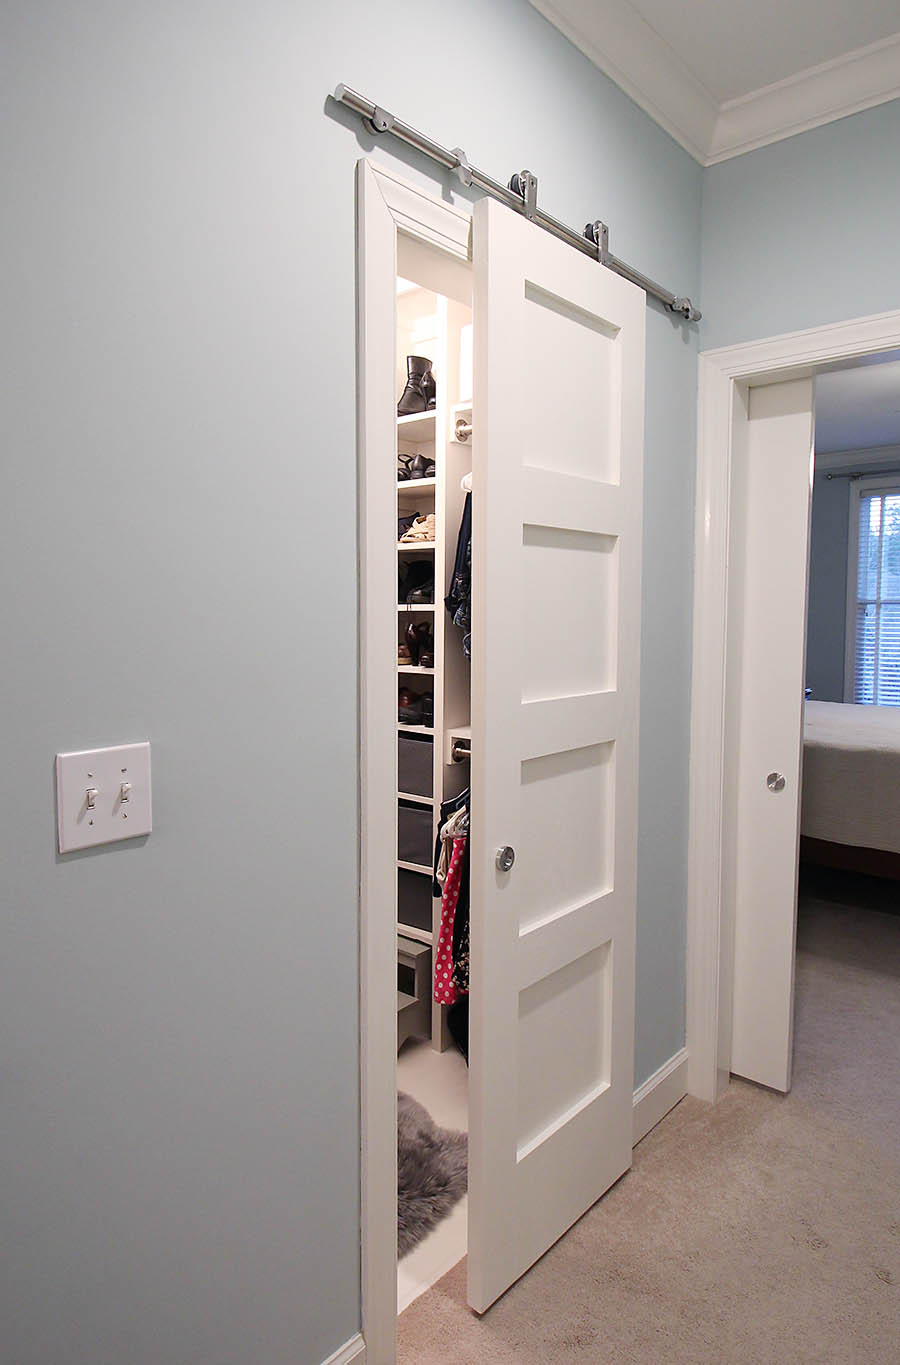 Closet Door mirrored closet door parts images : Remodelaholic | 35 DIY Barn Doors + Rolling Door Hardware Ideas